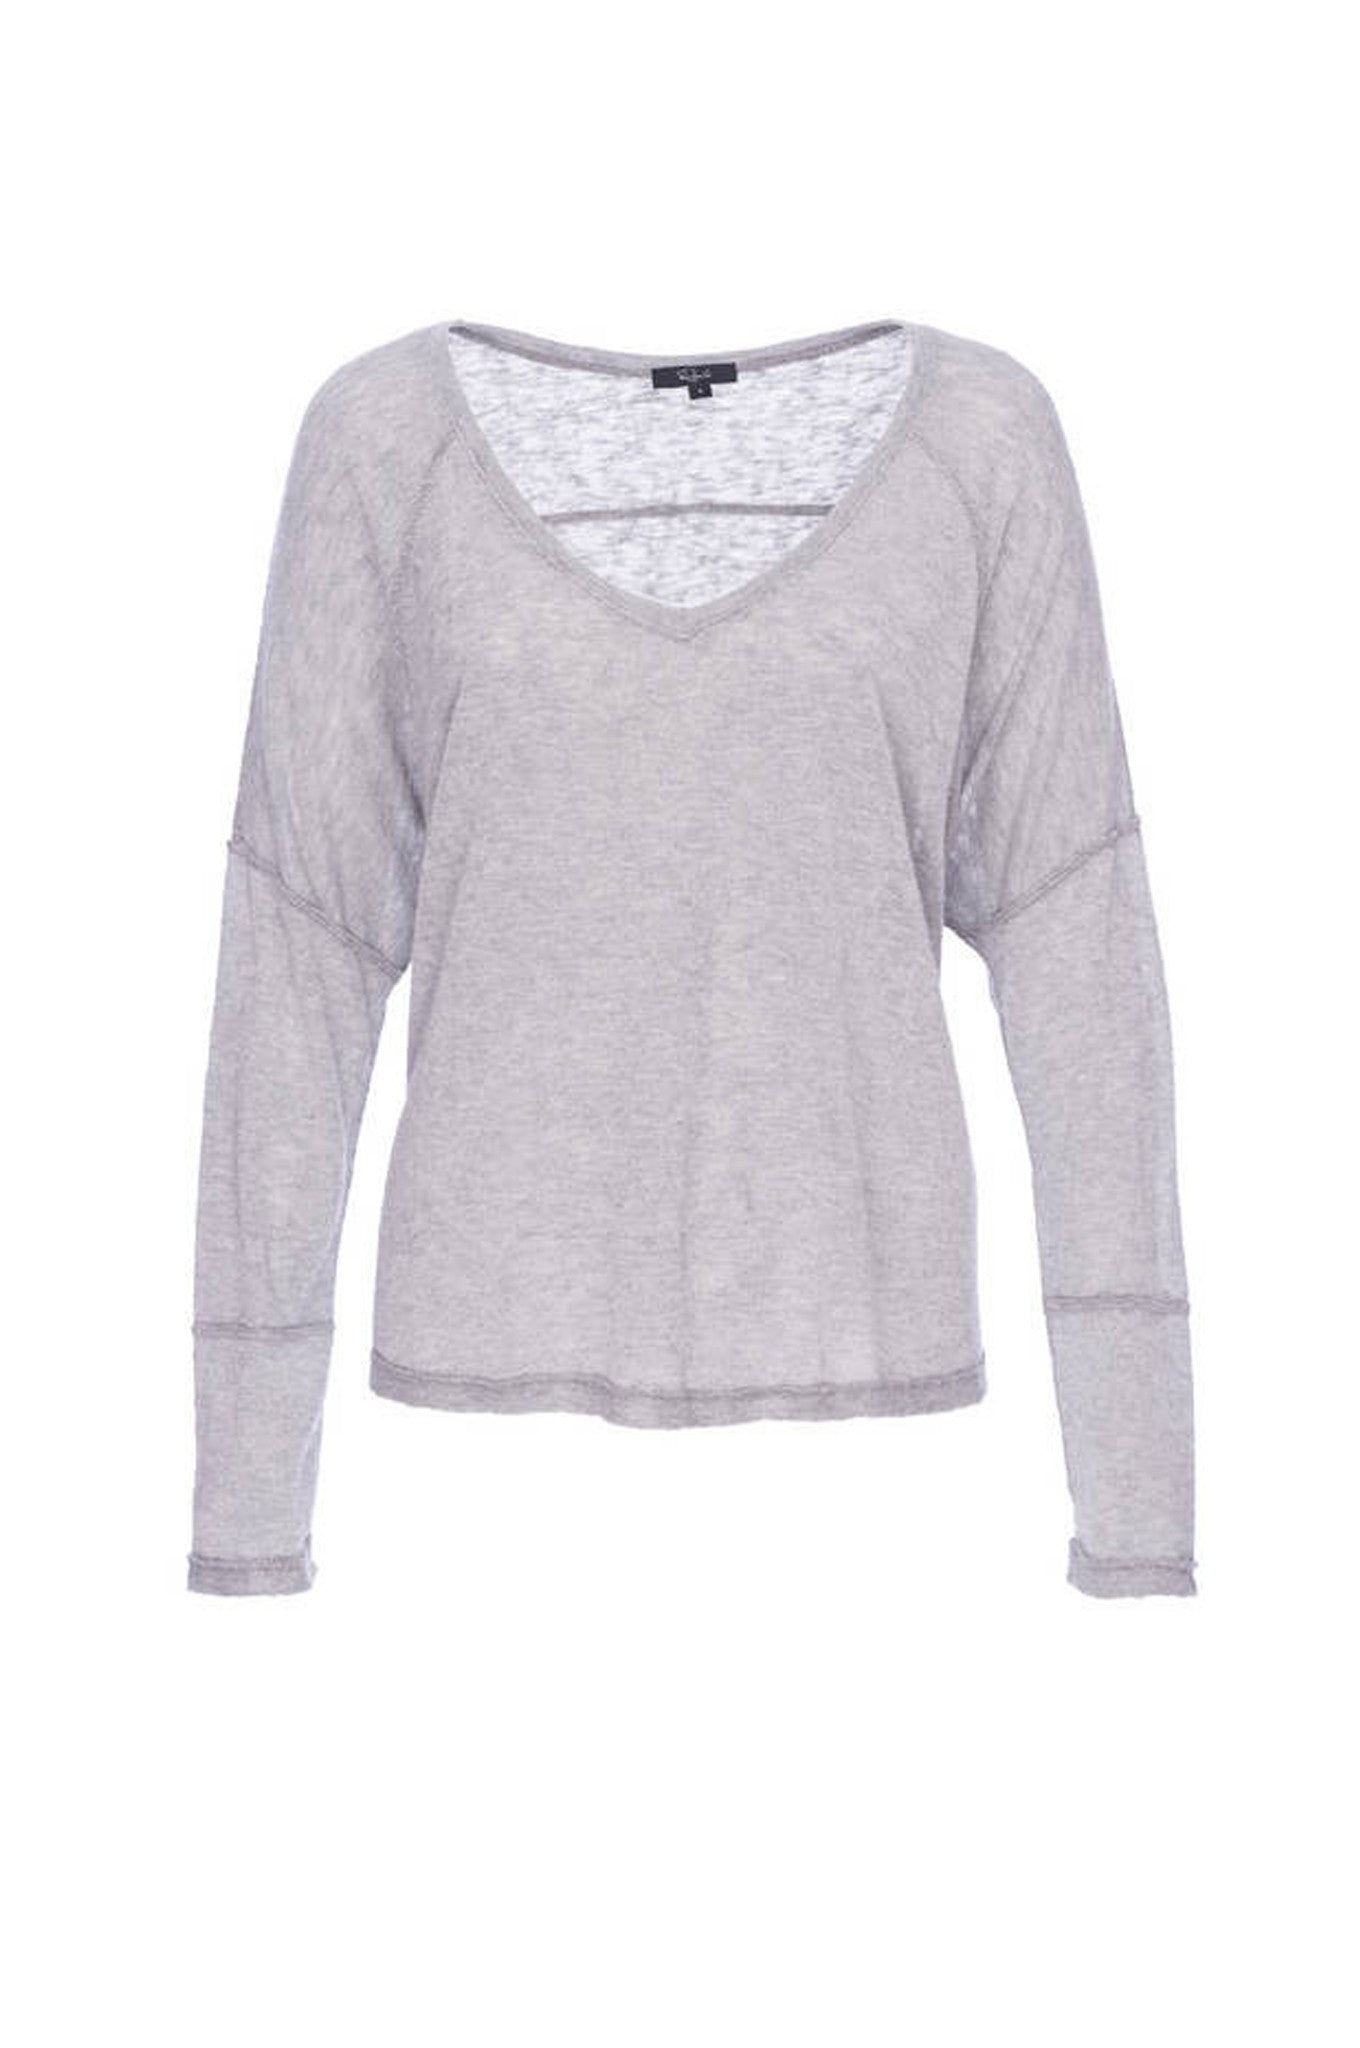 Aden - Heather Grey